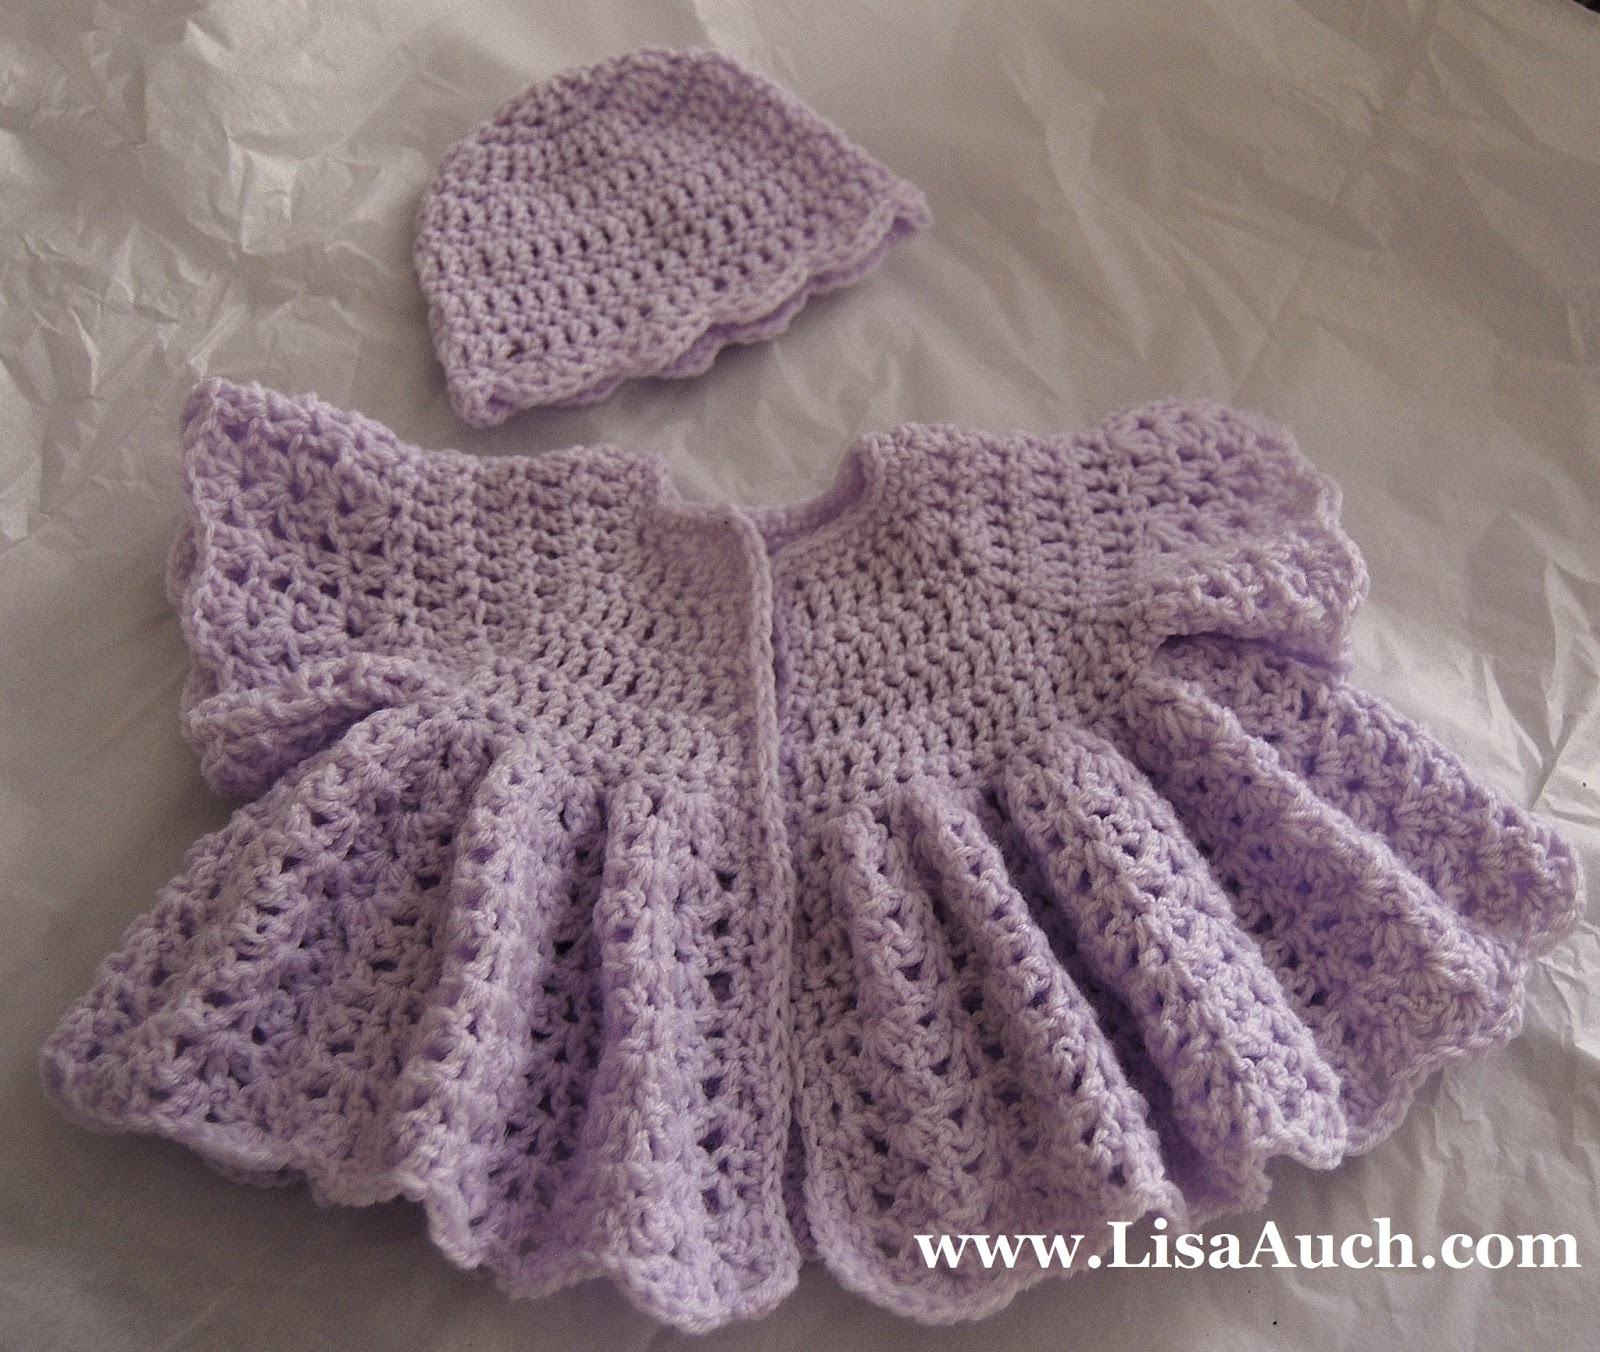 Pattern Crochet Free : Free Crochet Patterns-crochet baby layette patterns-baby sweater ...